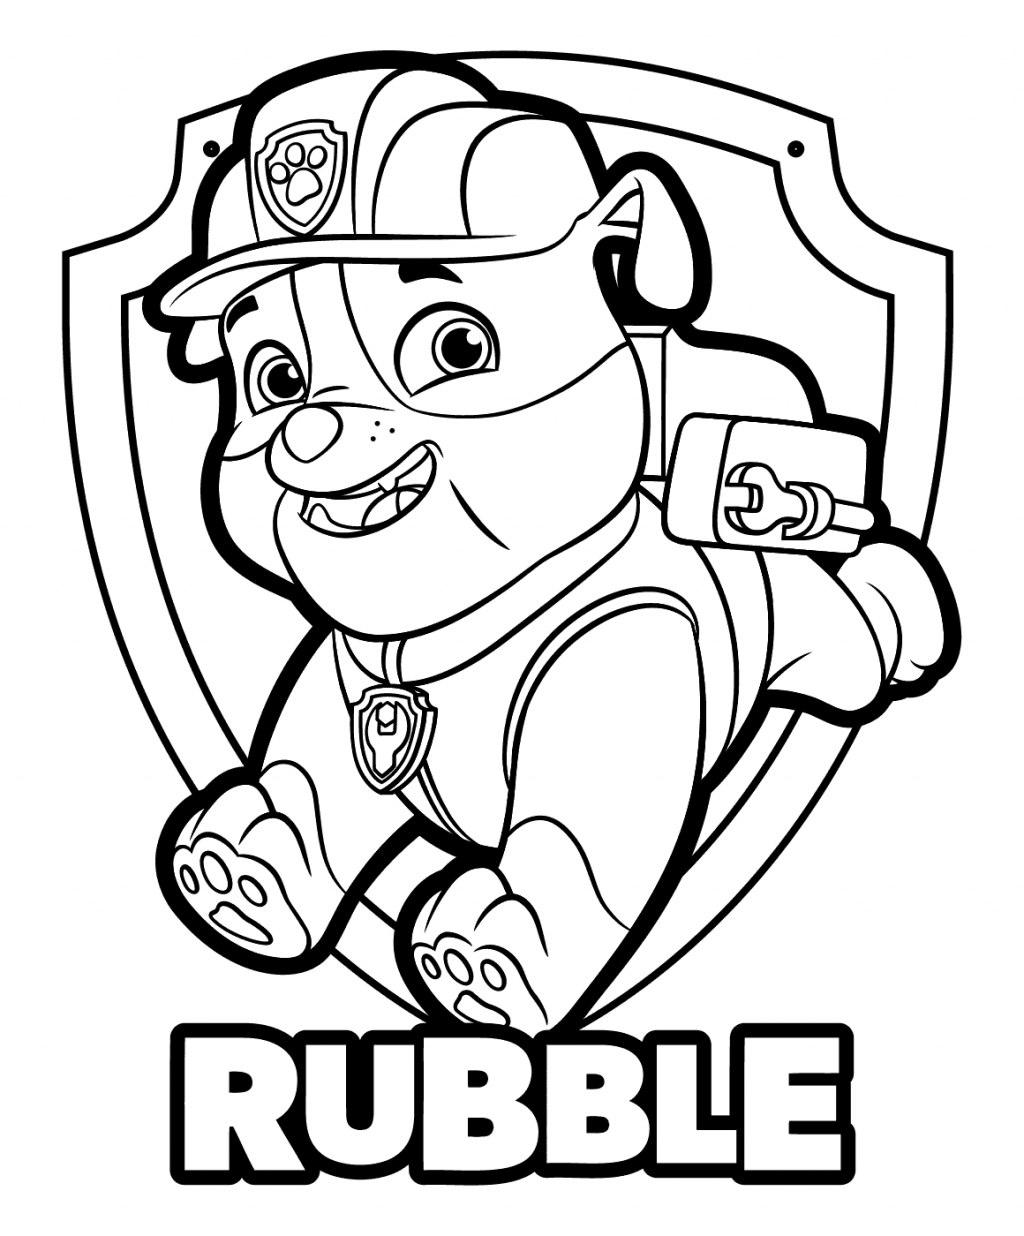 coloring images paw patrol 15 best paw patrol coloring pages visual arts ideas patrol paw coloring images